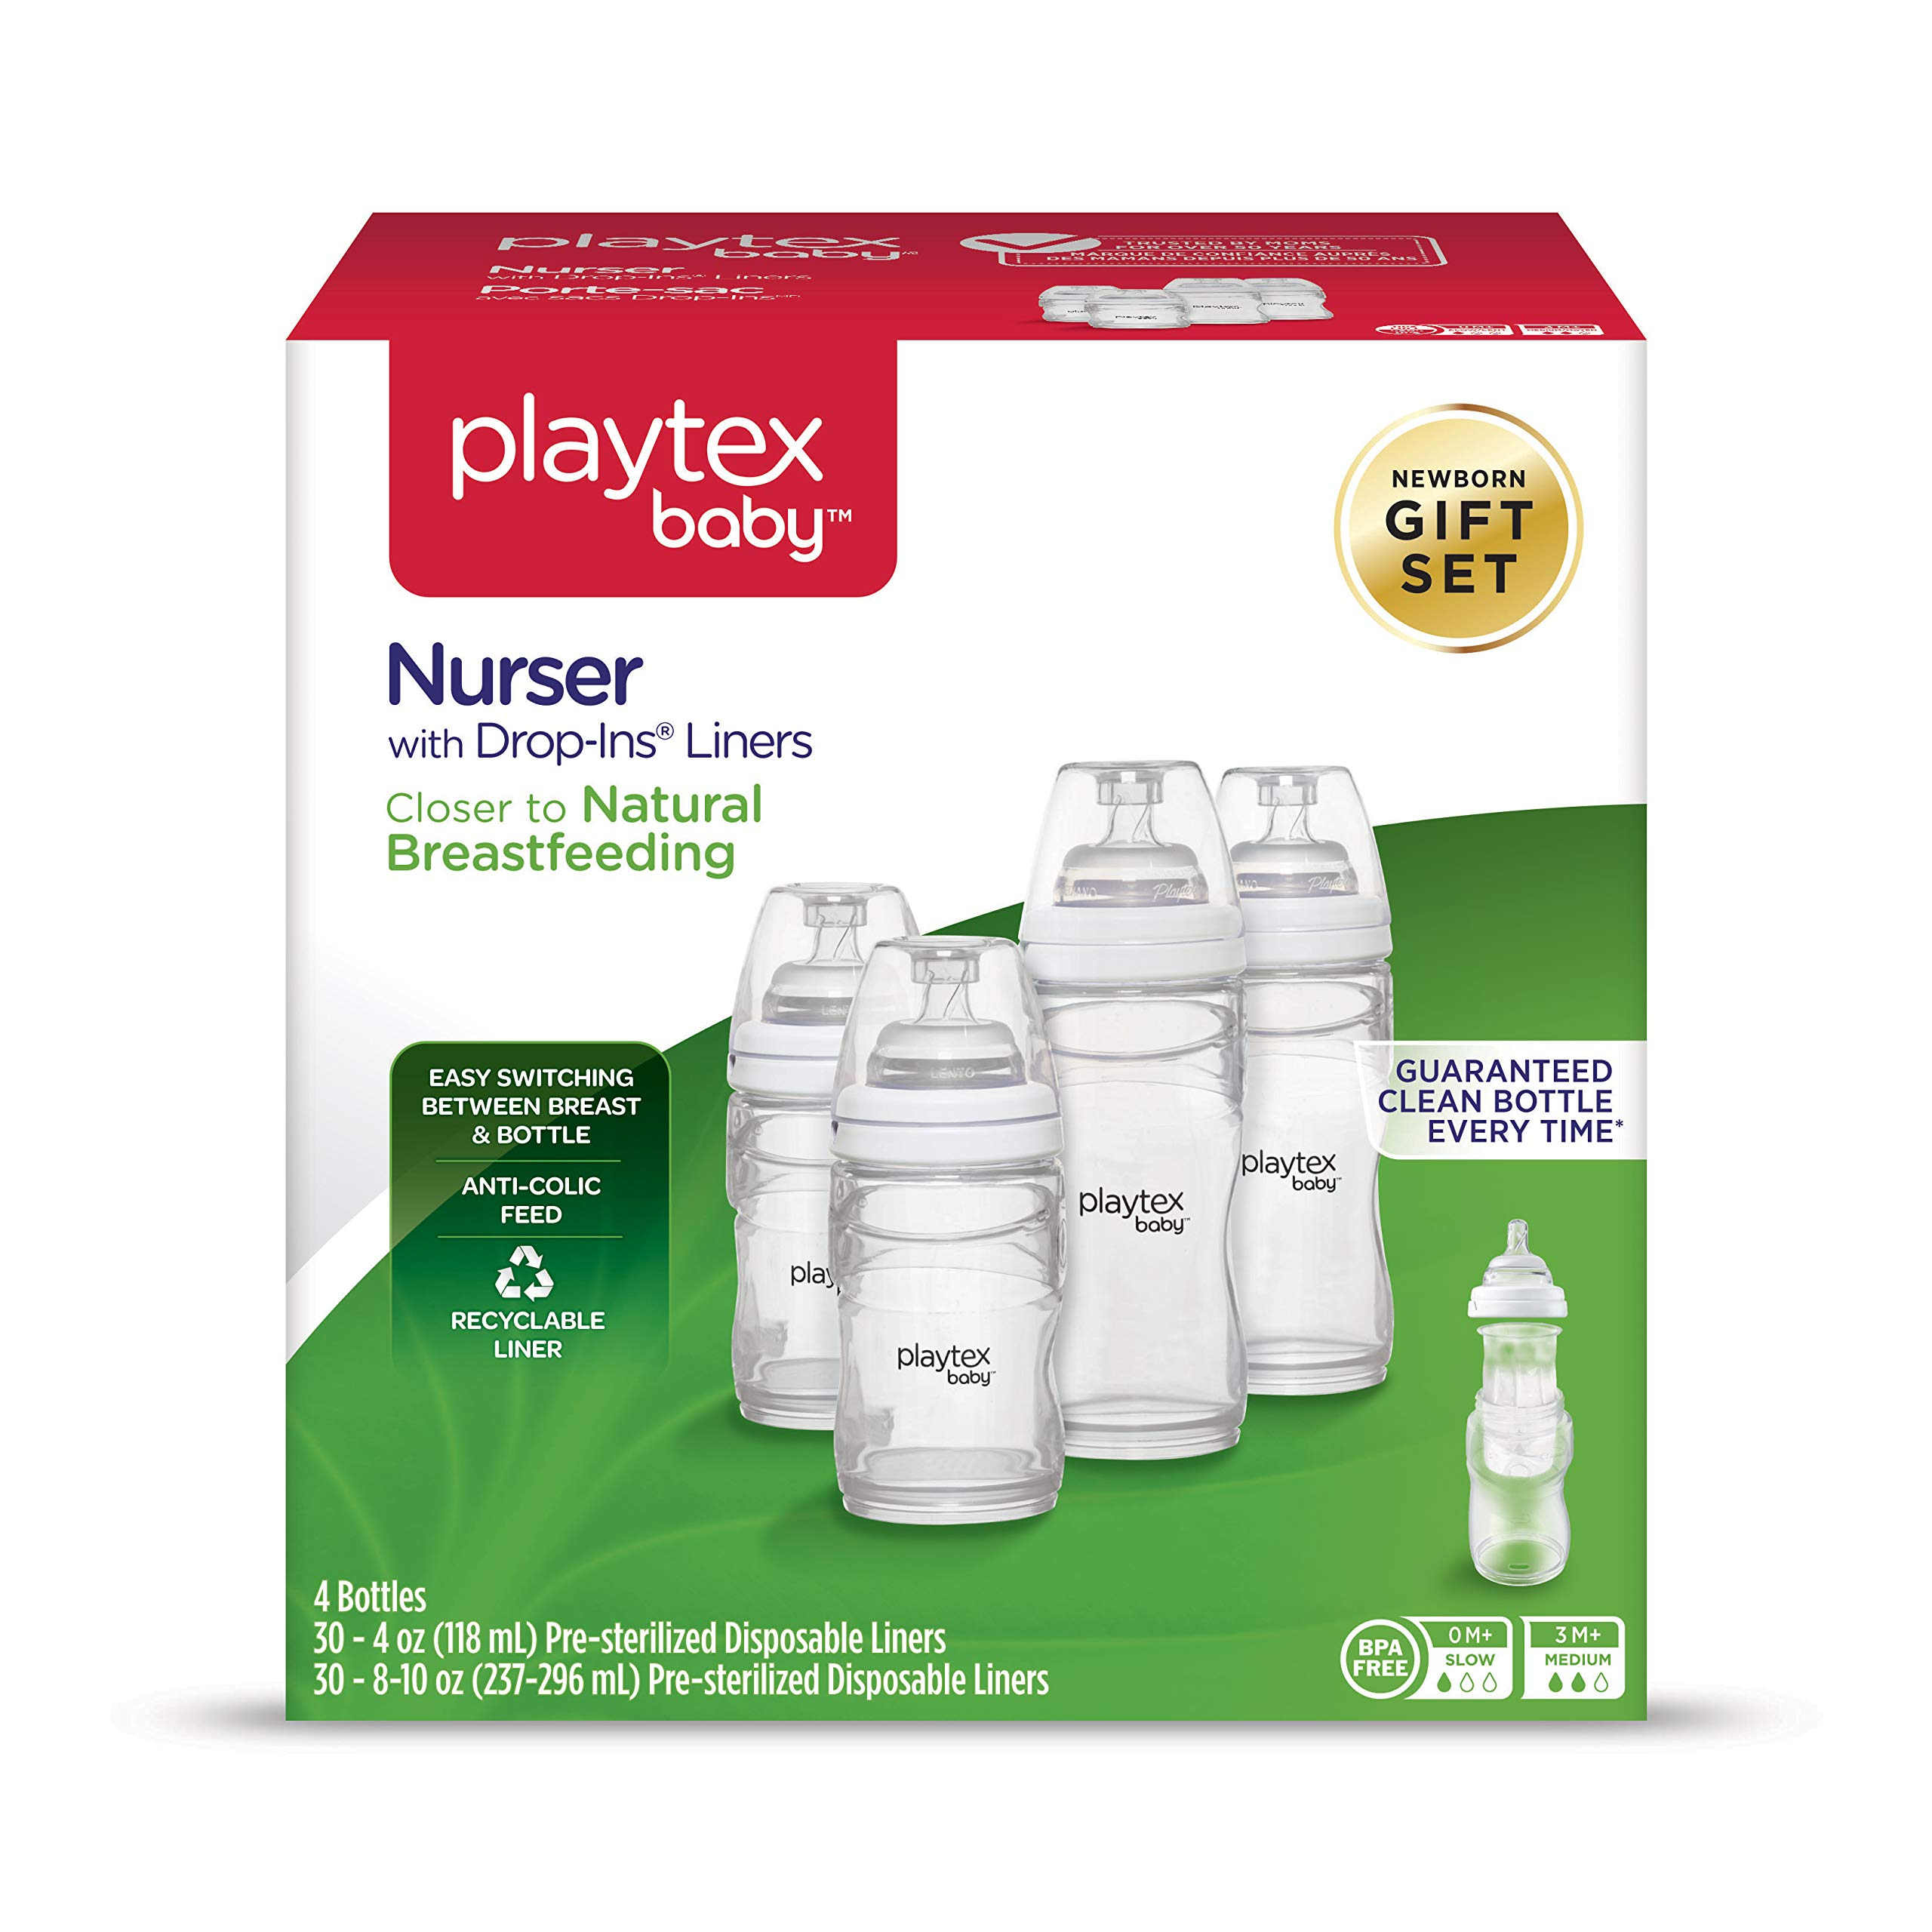 Playtex Baby Nurser Gift Set, Includes Anti-Colic Feeding Essentials to Meet Your Baby's Growing Needs by Playtex